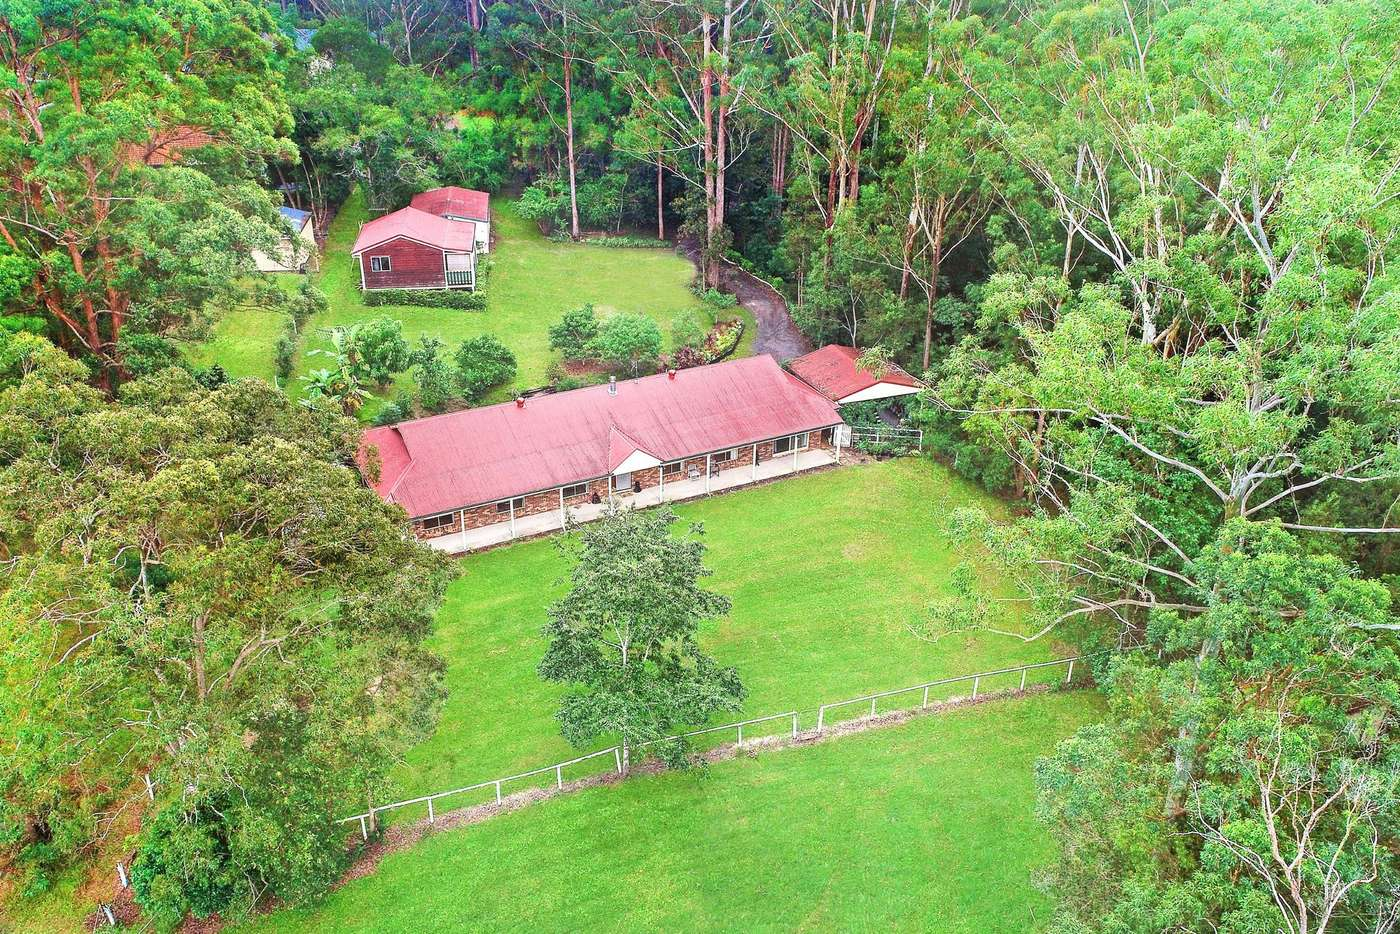 Main view of Homely house listing, 47 Birdsong Drive, Mooloolah Valley QLD 4553